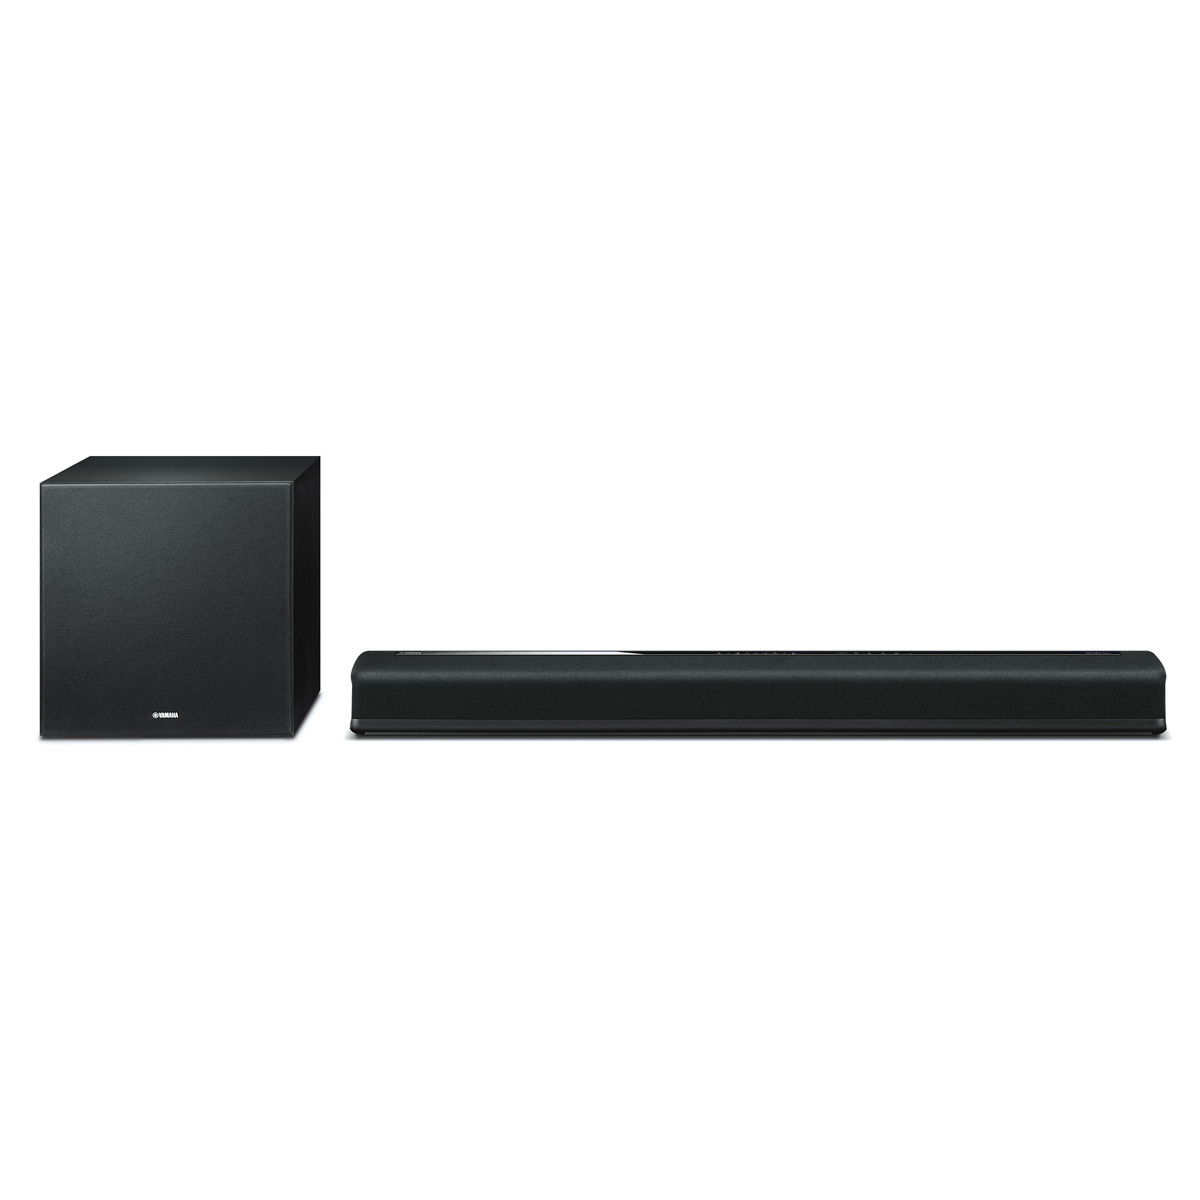 yamaha yas 706 musiccast sound bar with wireless subwoofer. Black Bedroom Furniture Sets. Home Design Ideas